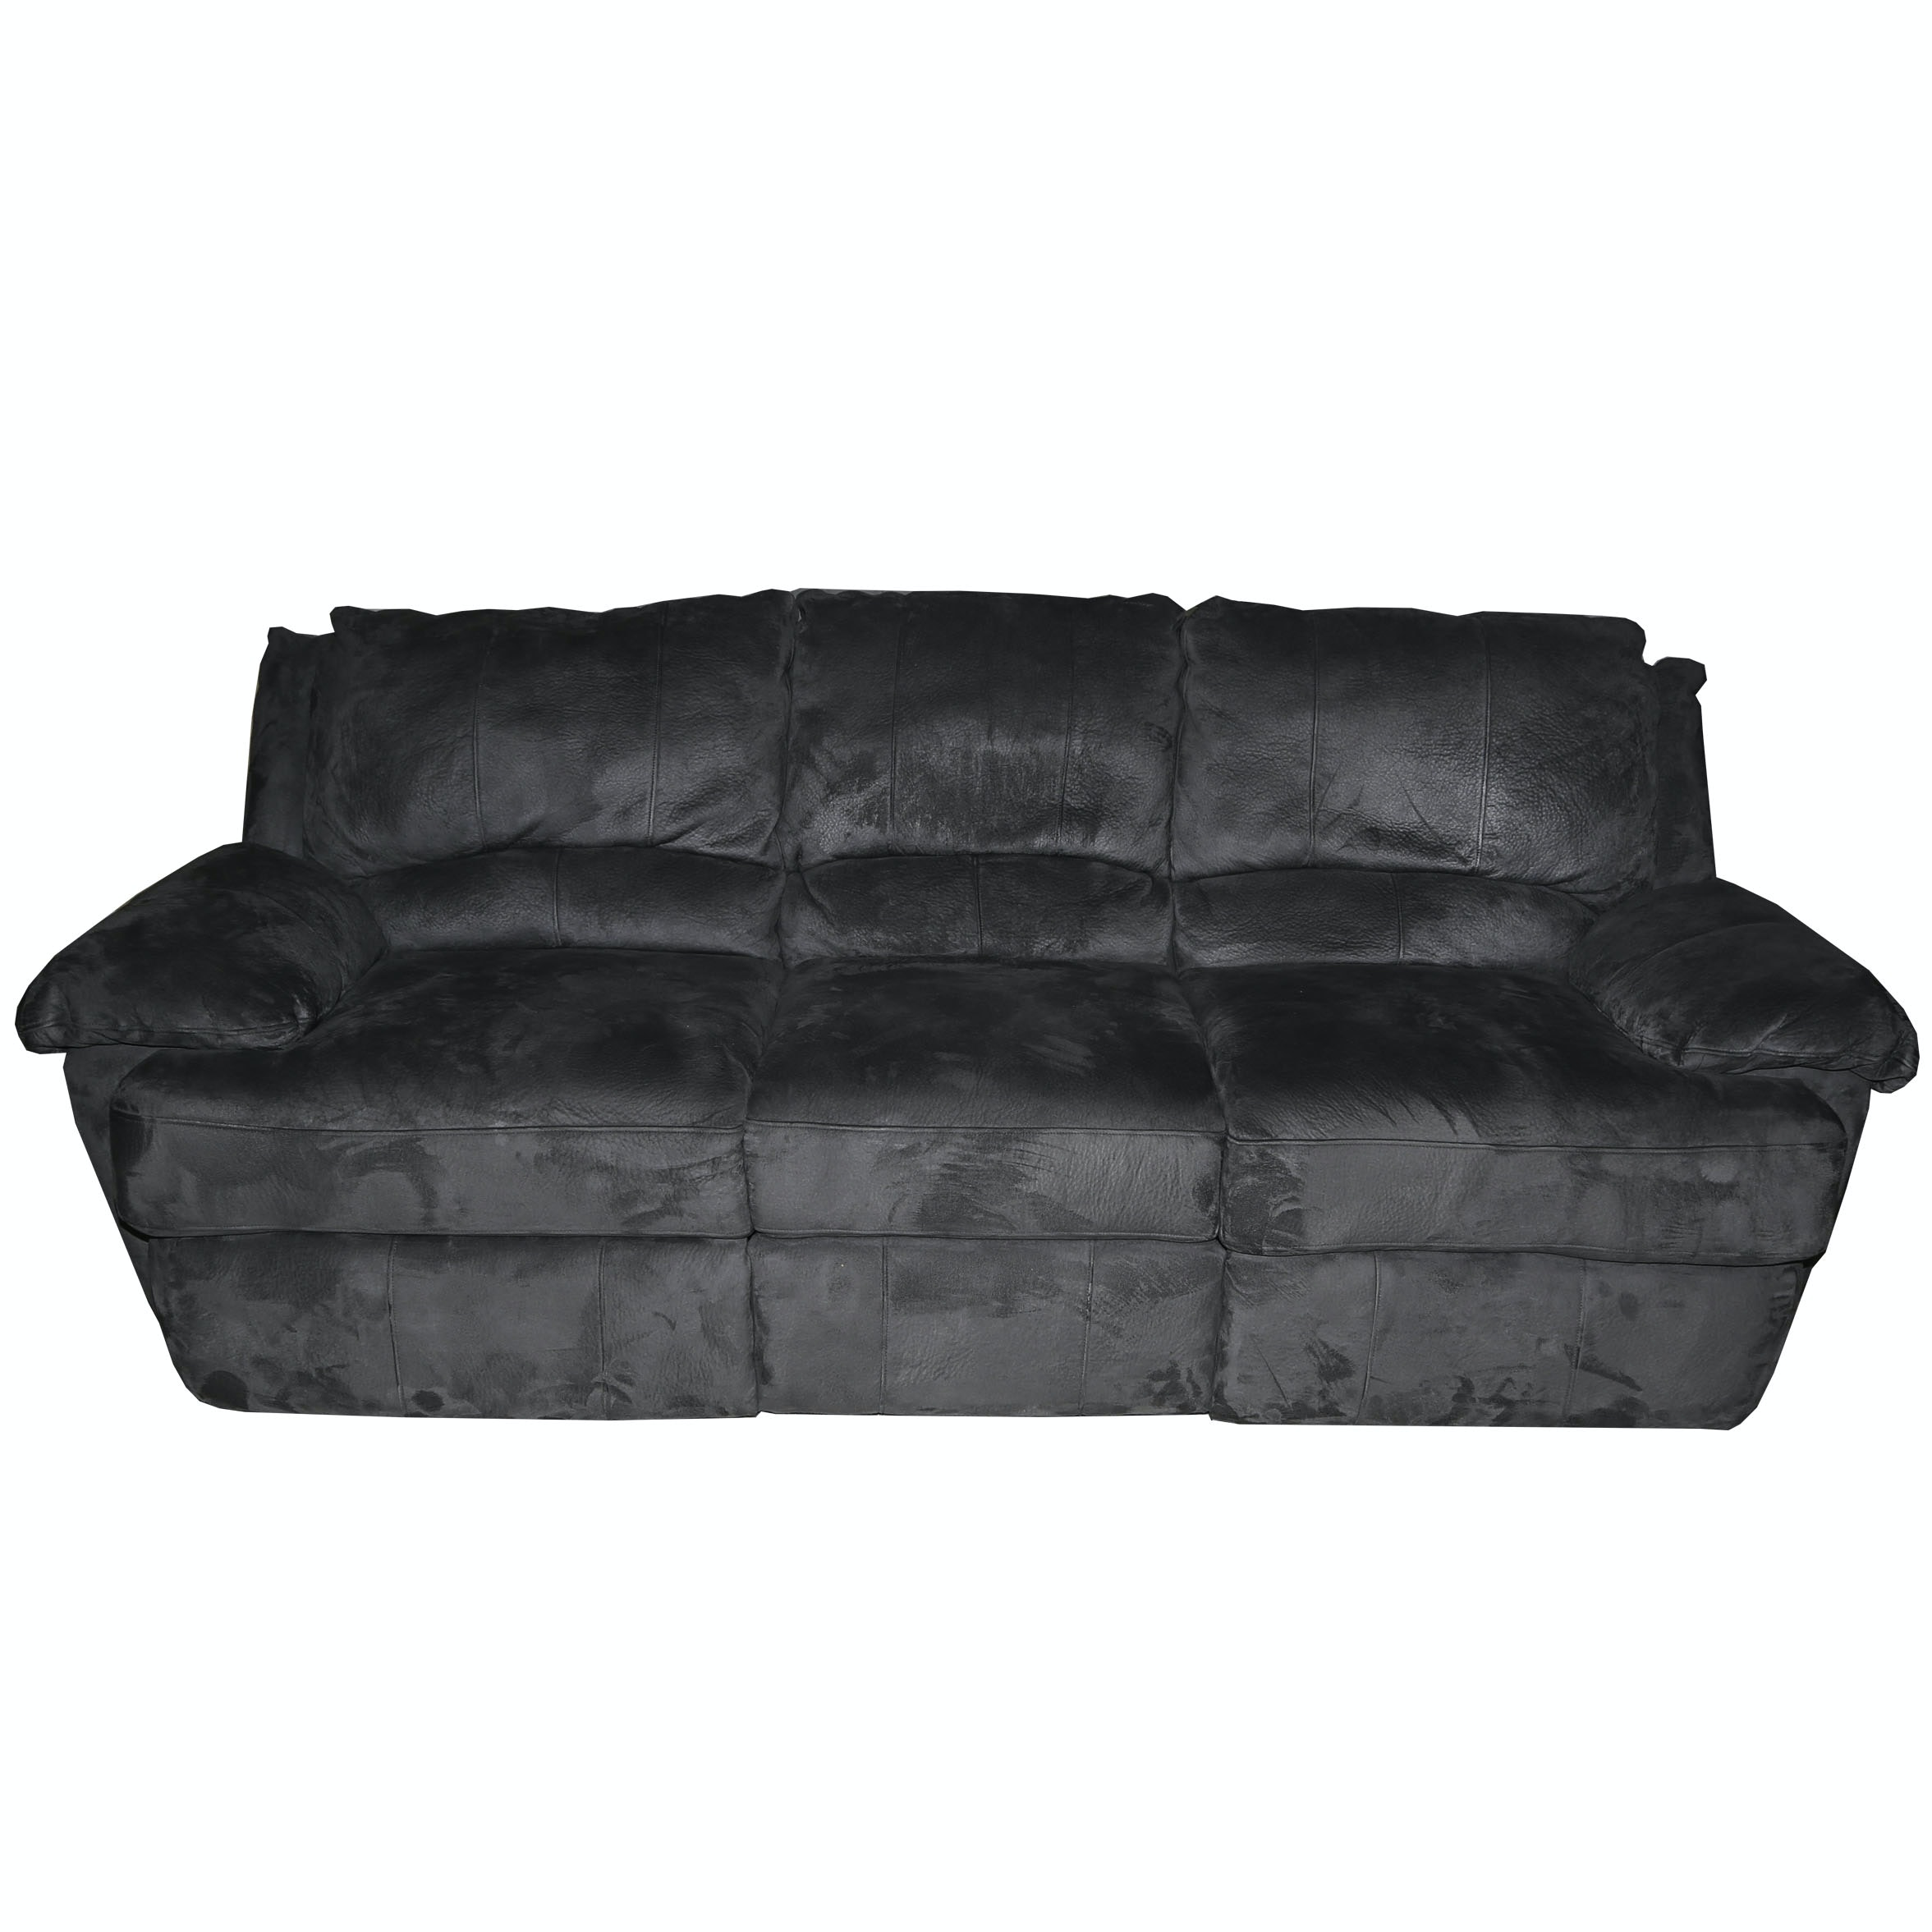 Contemporary Gray Microsuede Upholstered Reclining Sofa